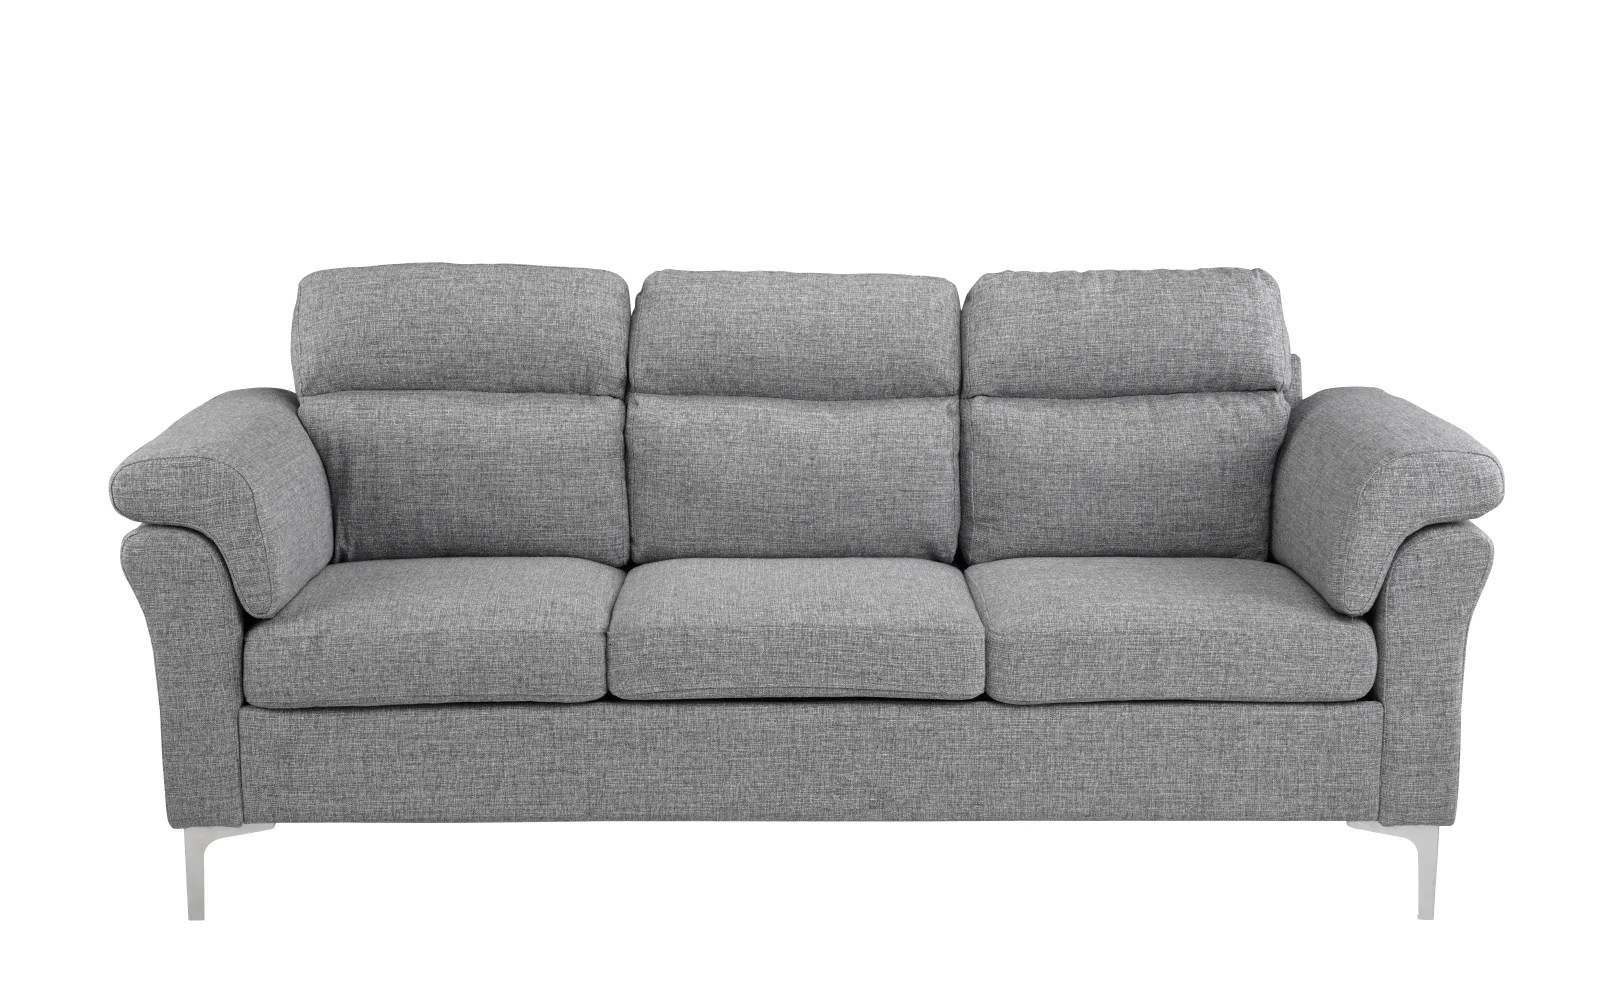 Sofa Via Via Contemporary Linen Sofa With Chrome Legs Sofamania